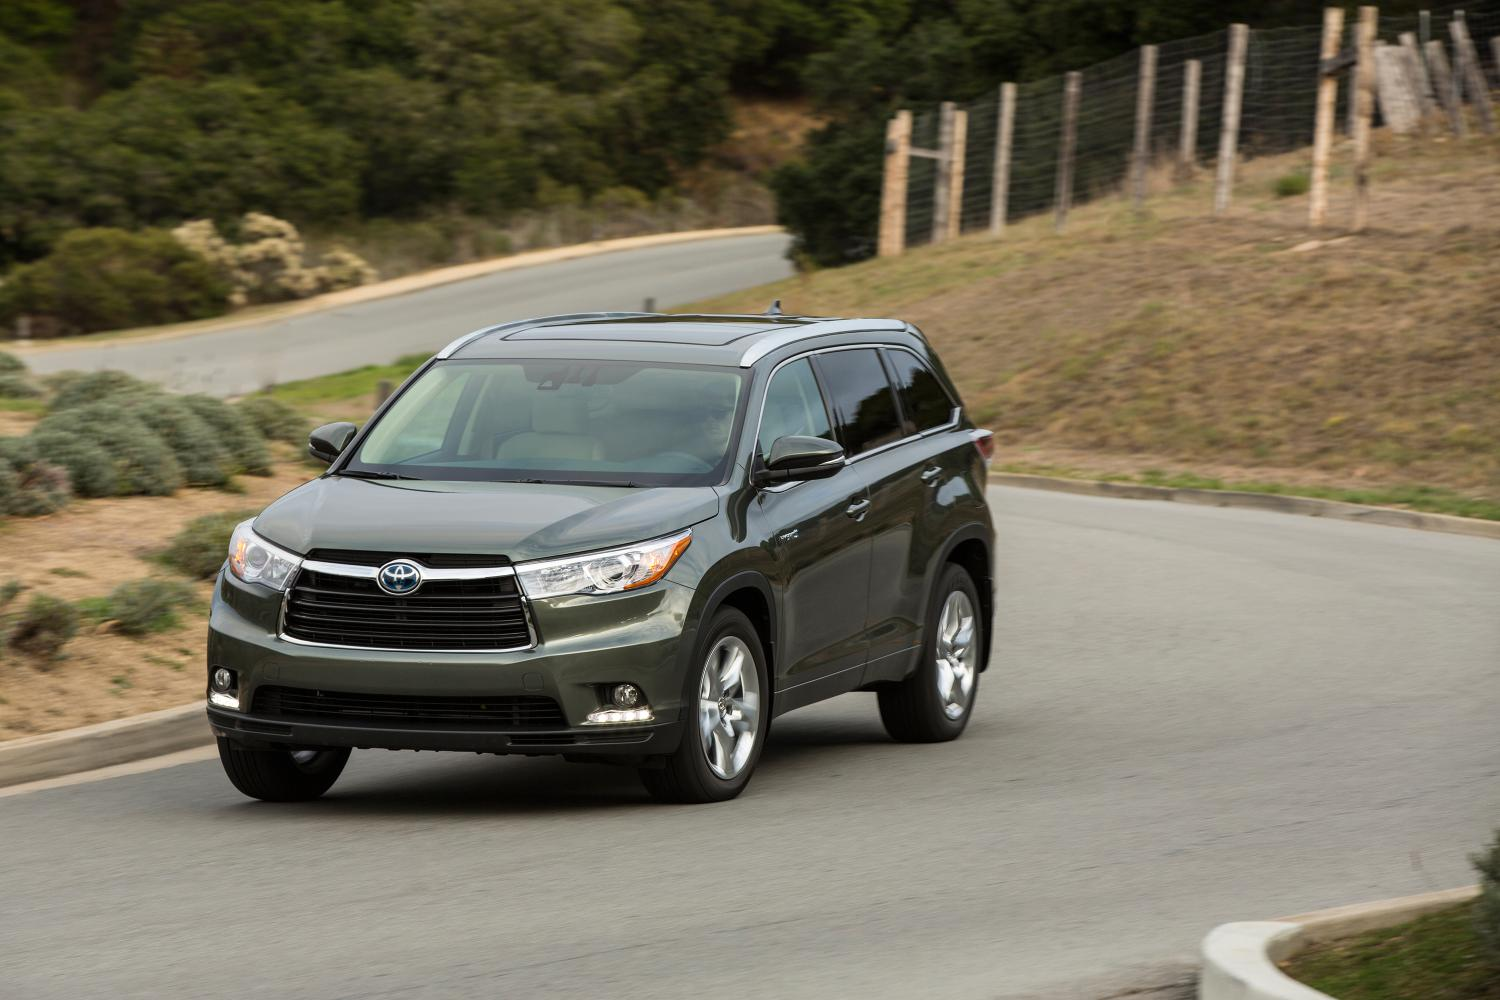 2014 toyota highlander us specs and prices released autoevolution. Black Bedroom Furniture Sets. Home Design Ideas